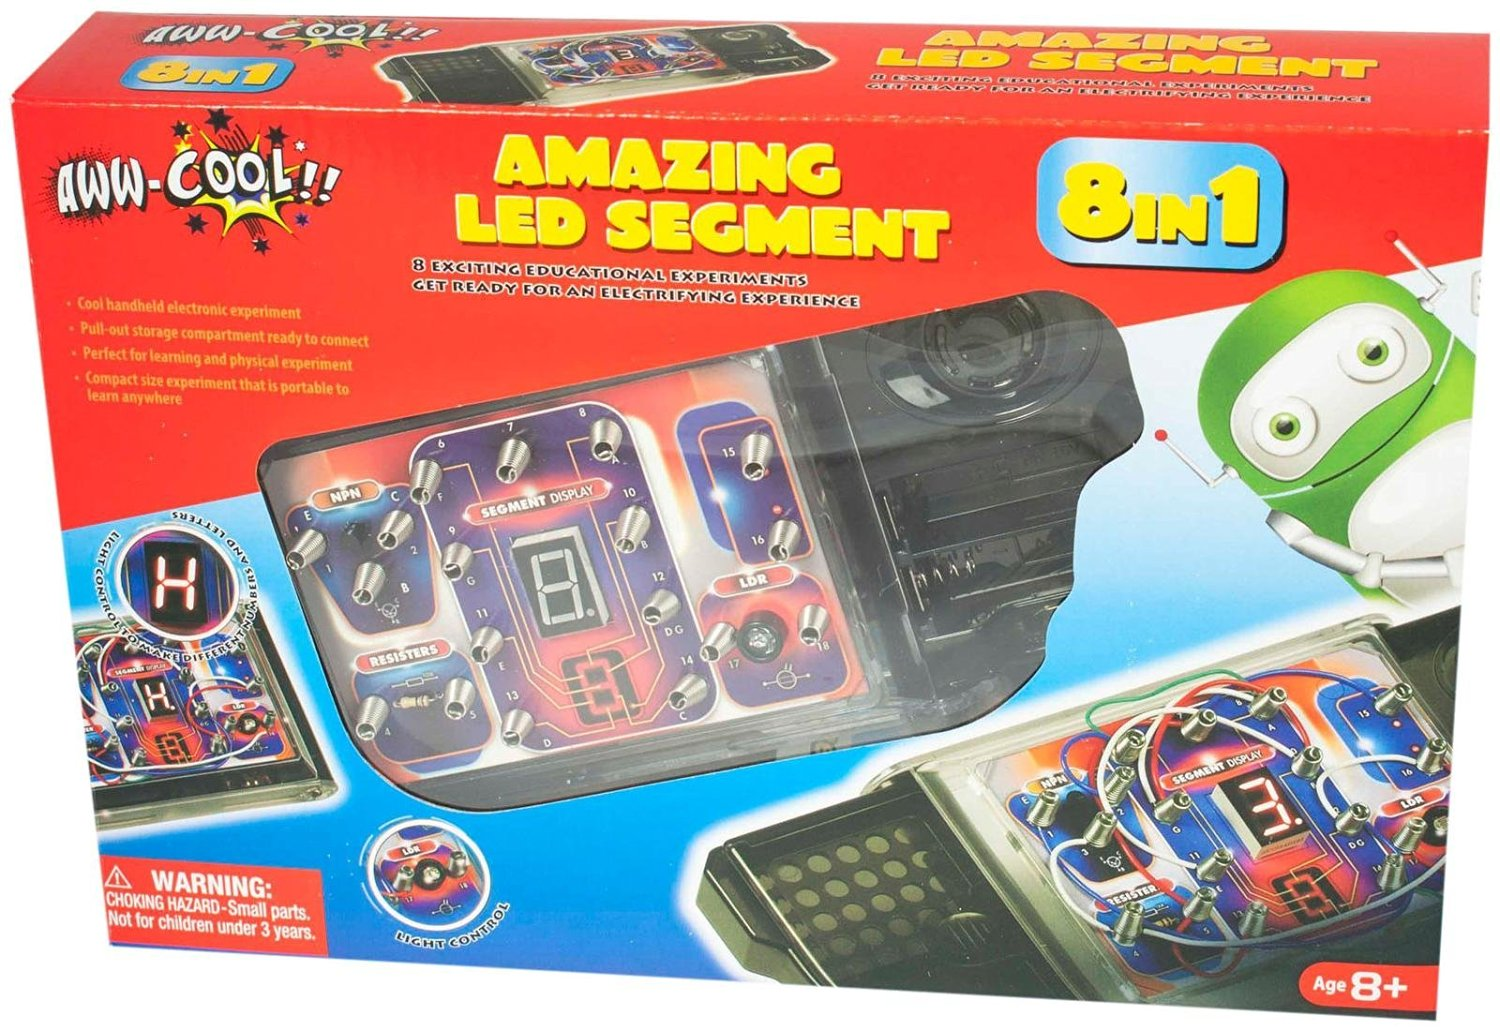 Cheap Circuit Board Kits Find Deals On Line At Learn About Boards Led Segment 8 In 1